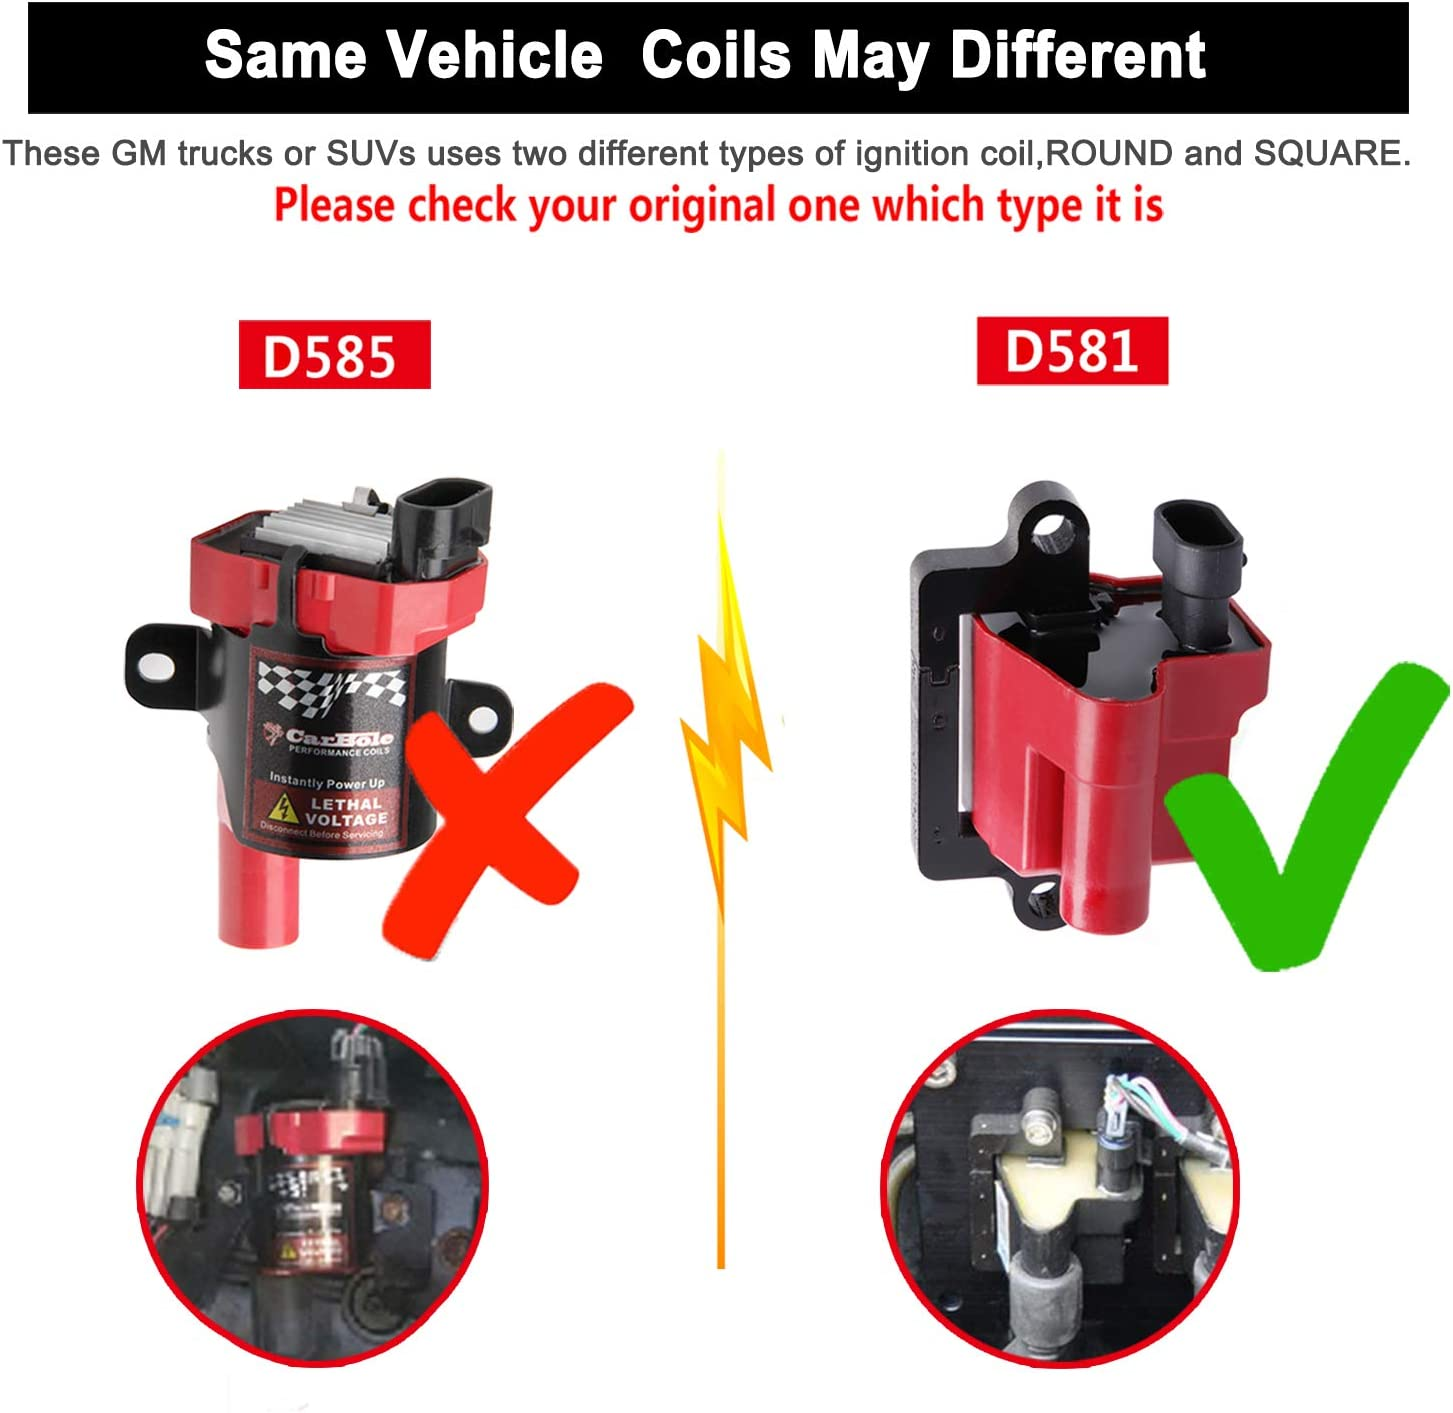 BANG4BUCK D581 UF271 Ignition Coils Square Type High Voltage for Cadillac Chevy Silverado Avalanche Express Suburban Tahoe GMC Sierra Savana 12558693 12556893 3859078 8 Pack